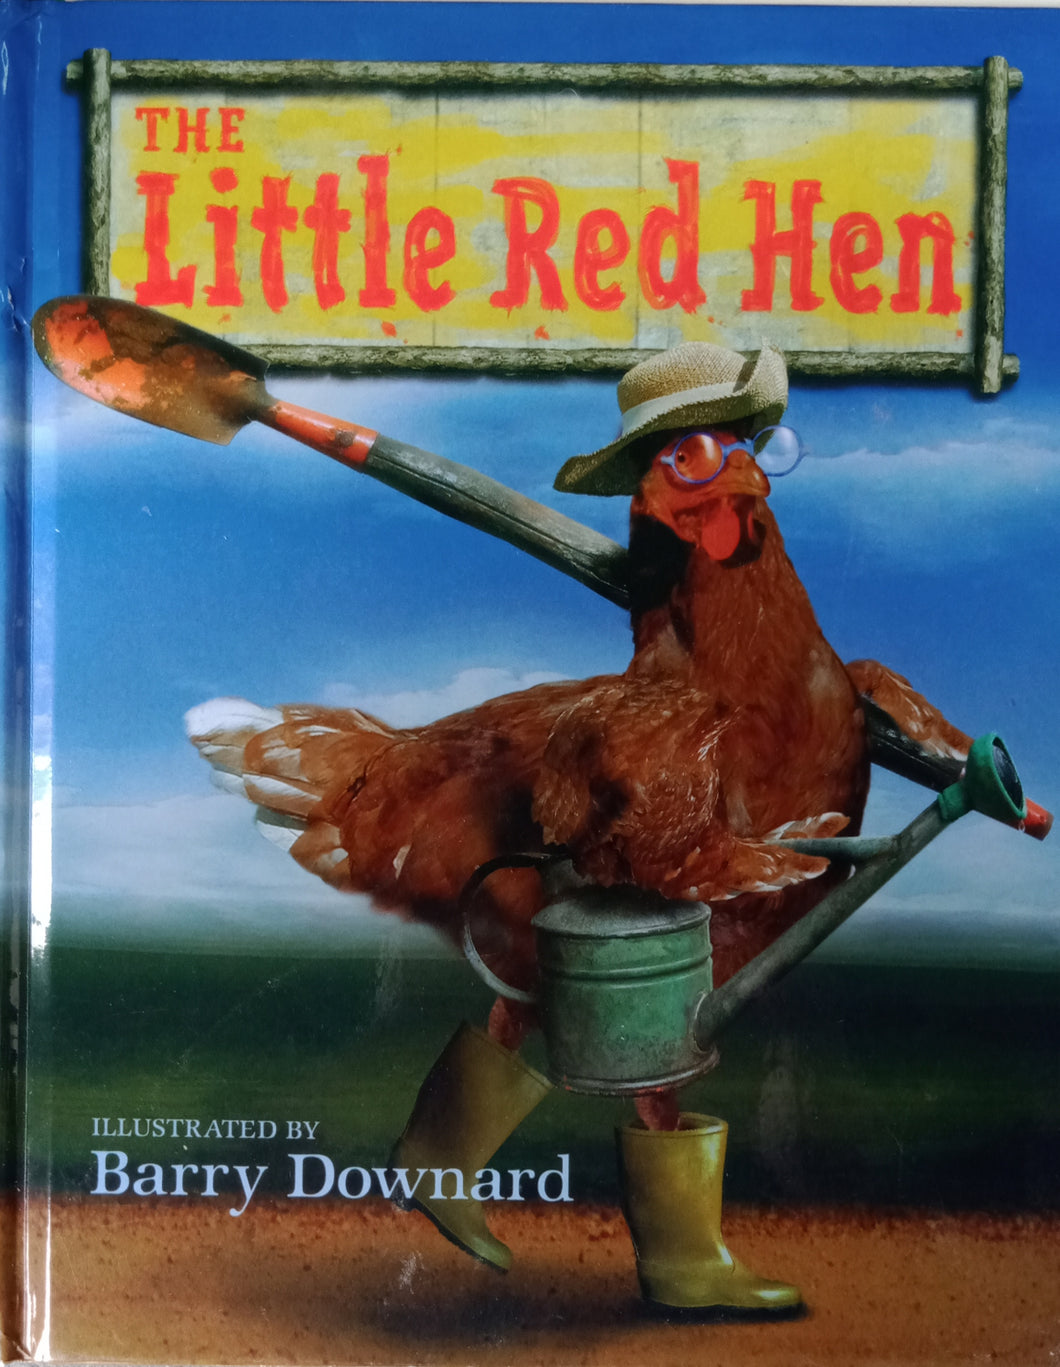 The Little Red Hen by Barry Downward